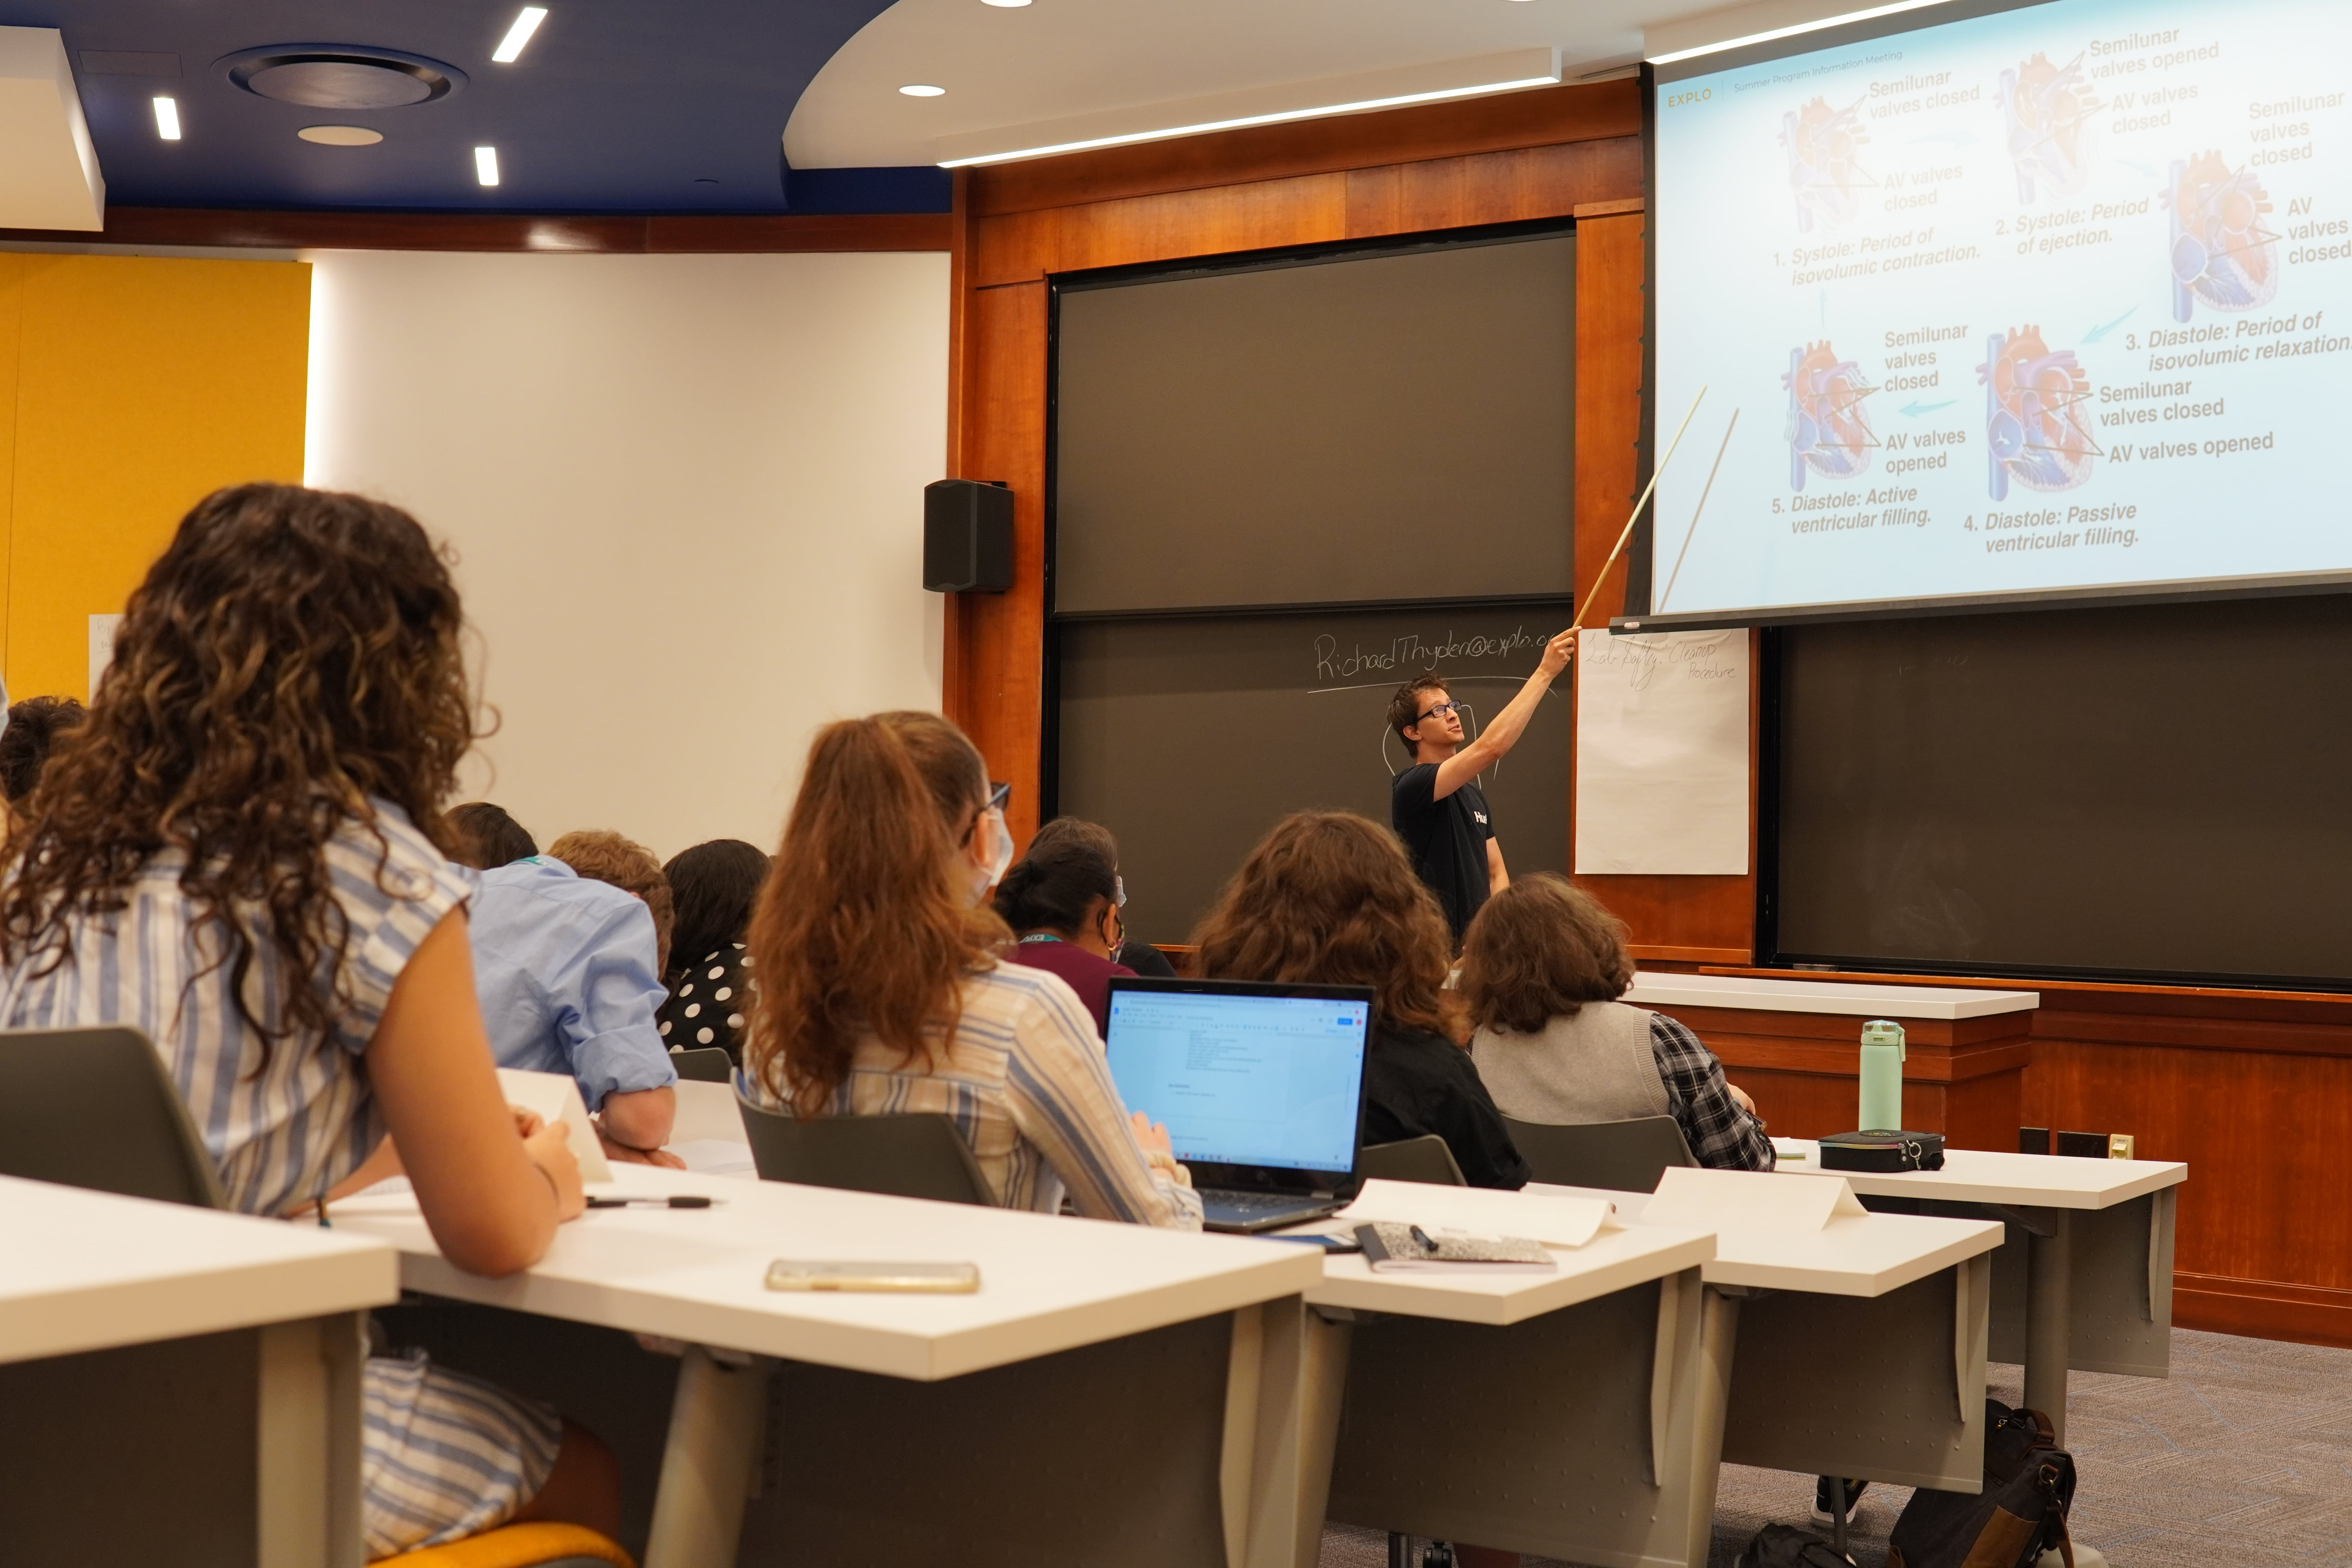 Students in four rising rows of desks watch as their instructor points to a diagram of the heart projected above him